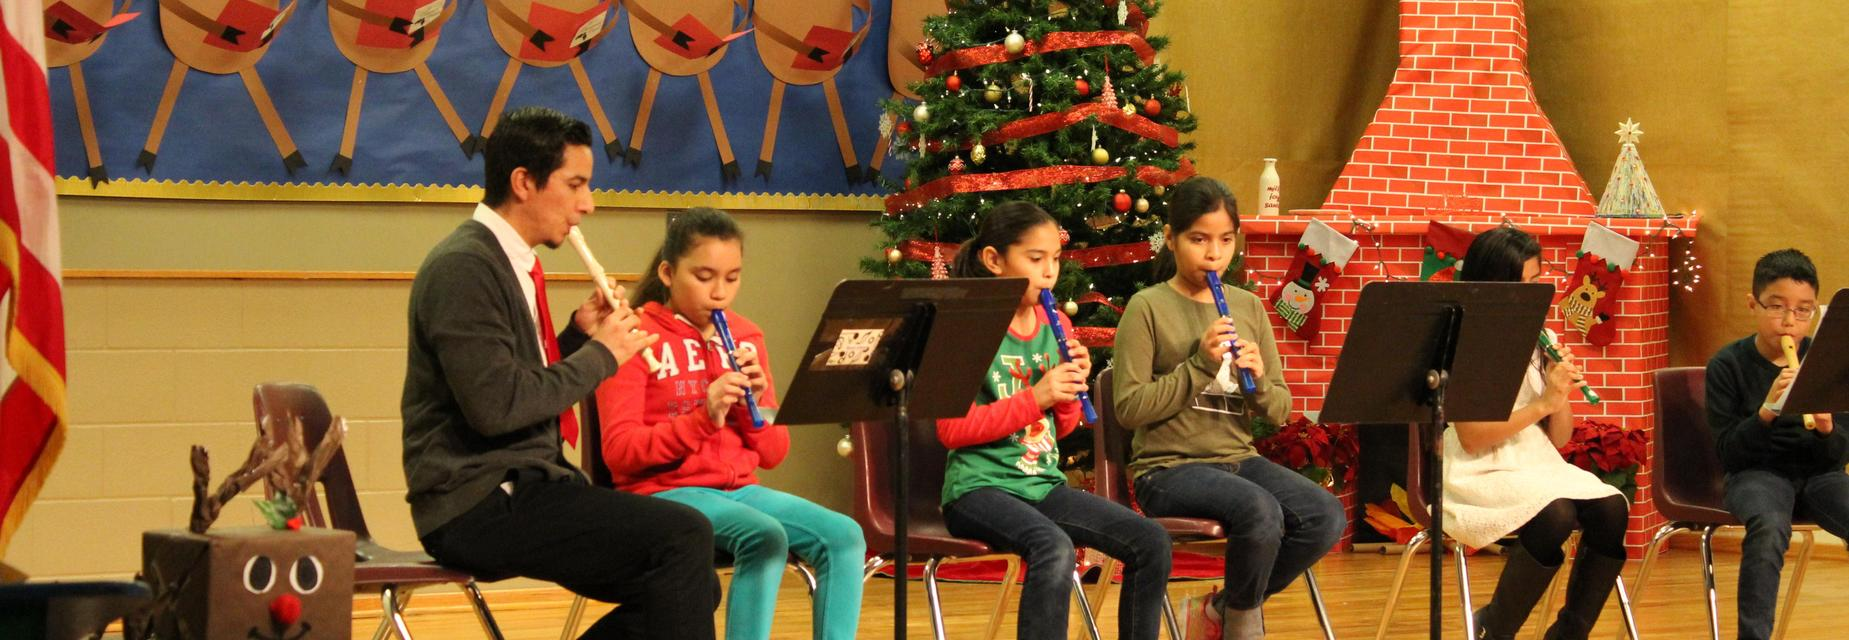 Recorder performance on stage